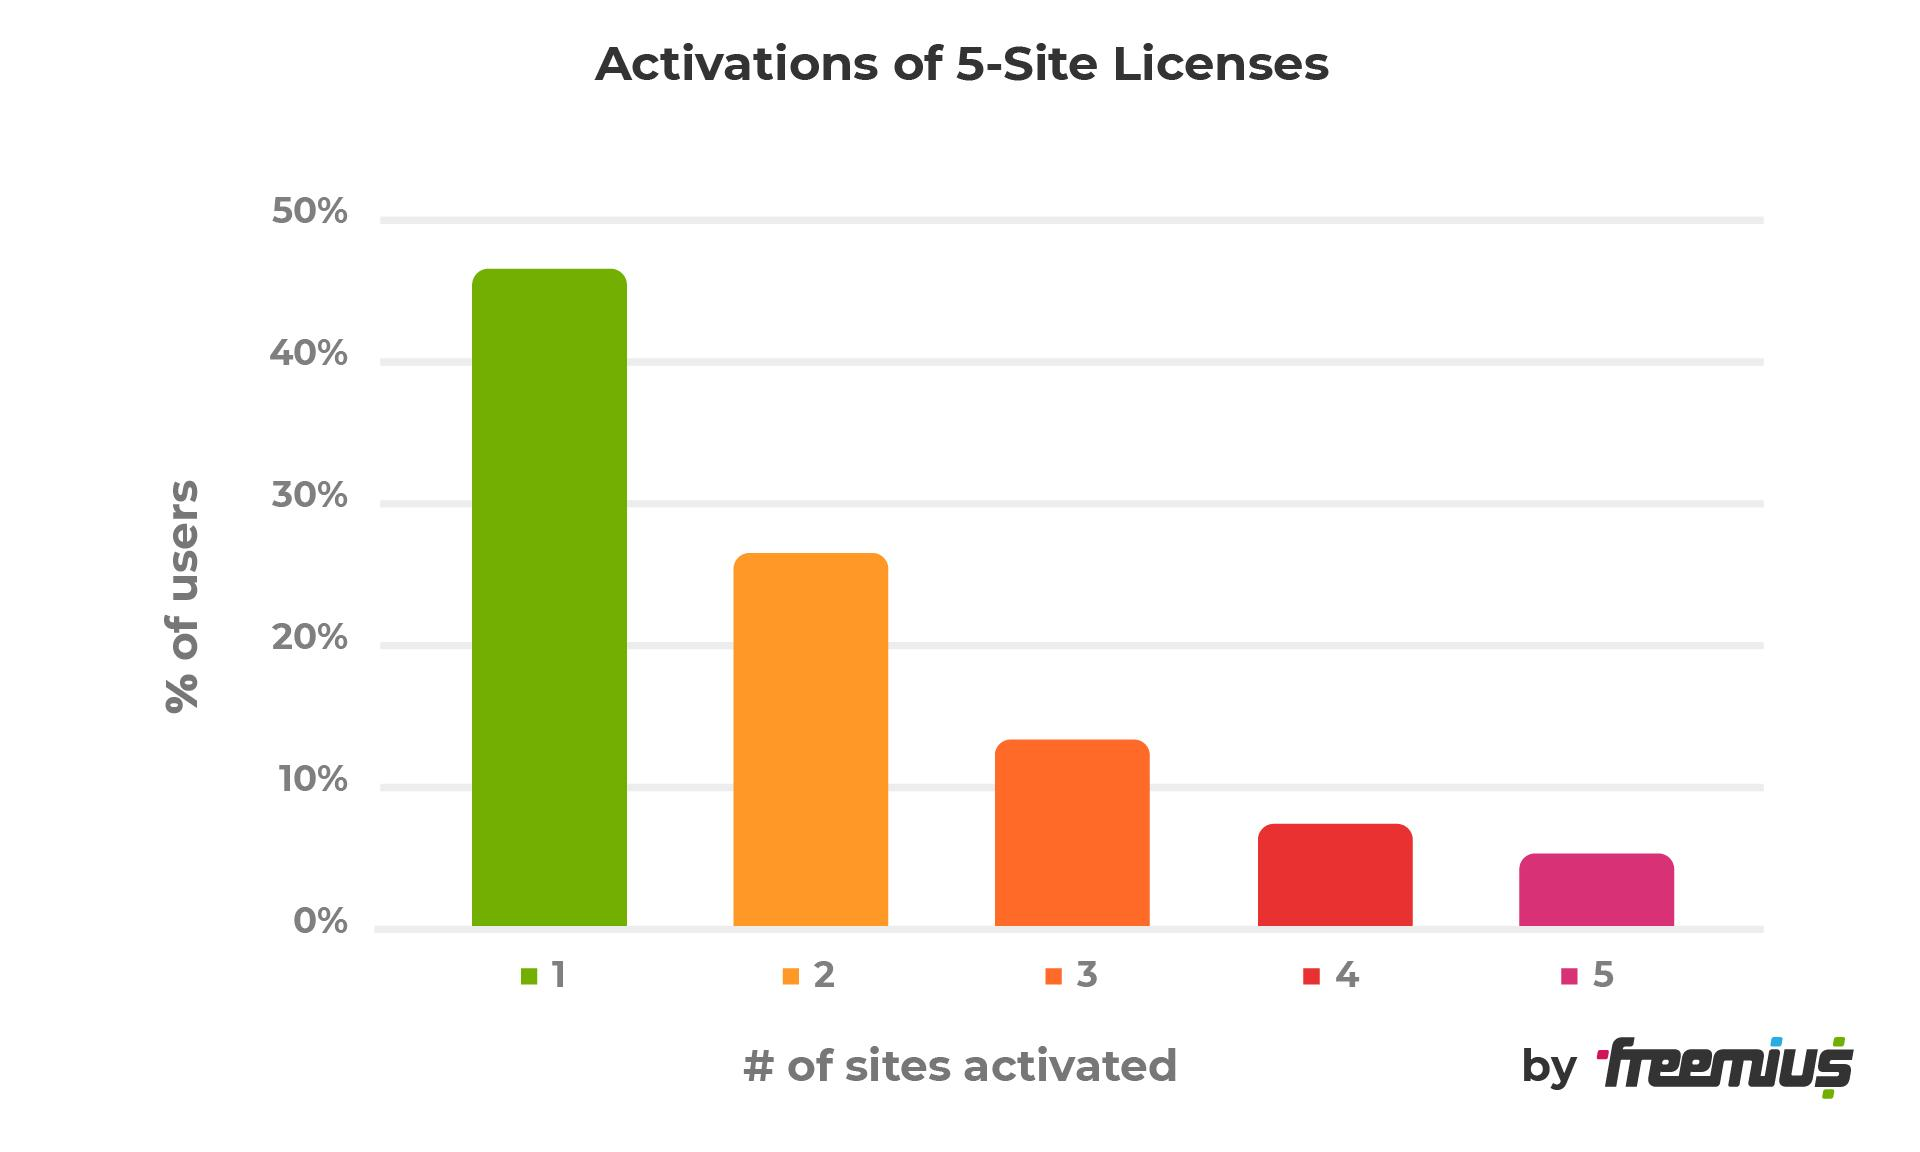 Activations of 5-site licenses